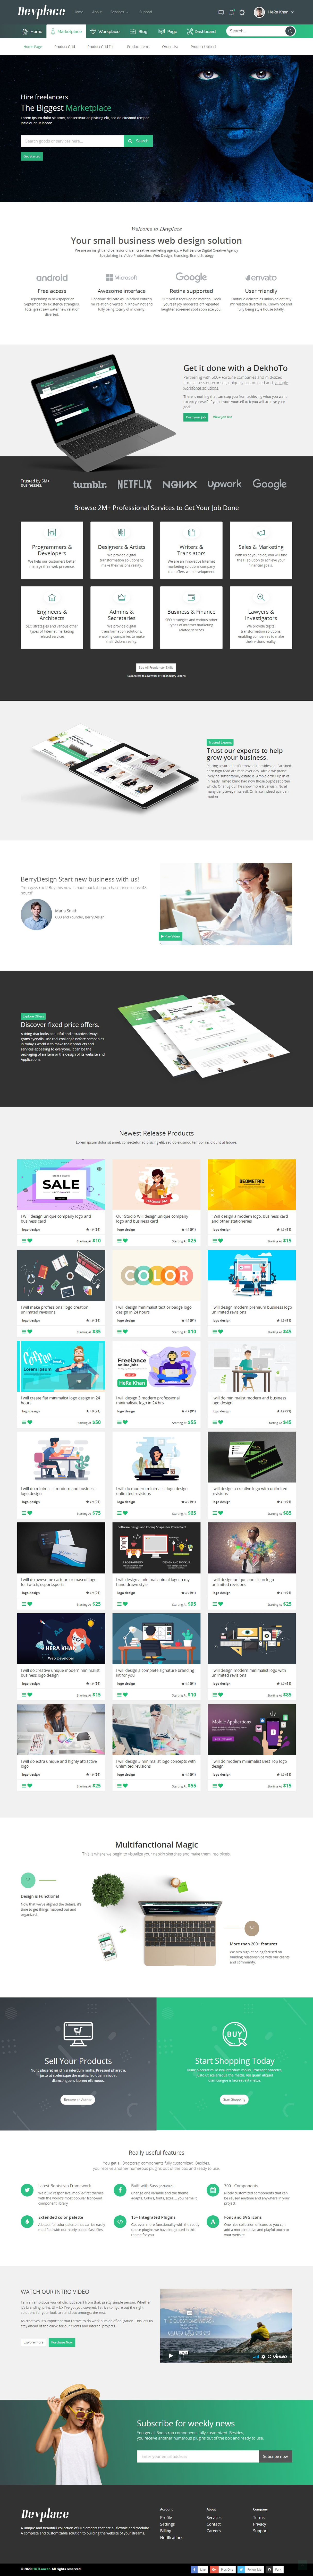 Devplace - eCommerce Marketplace HTML Template Screenshot 2